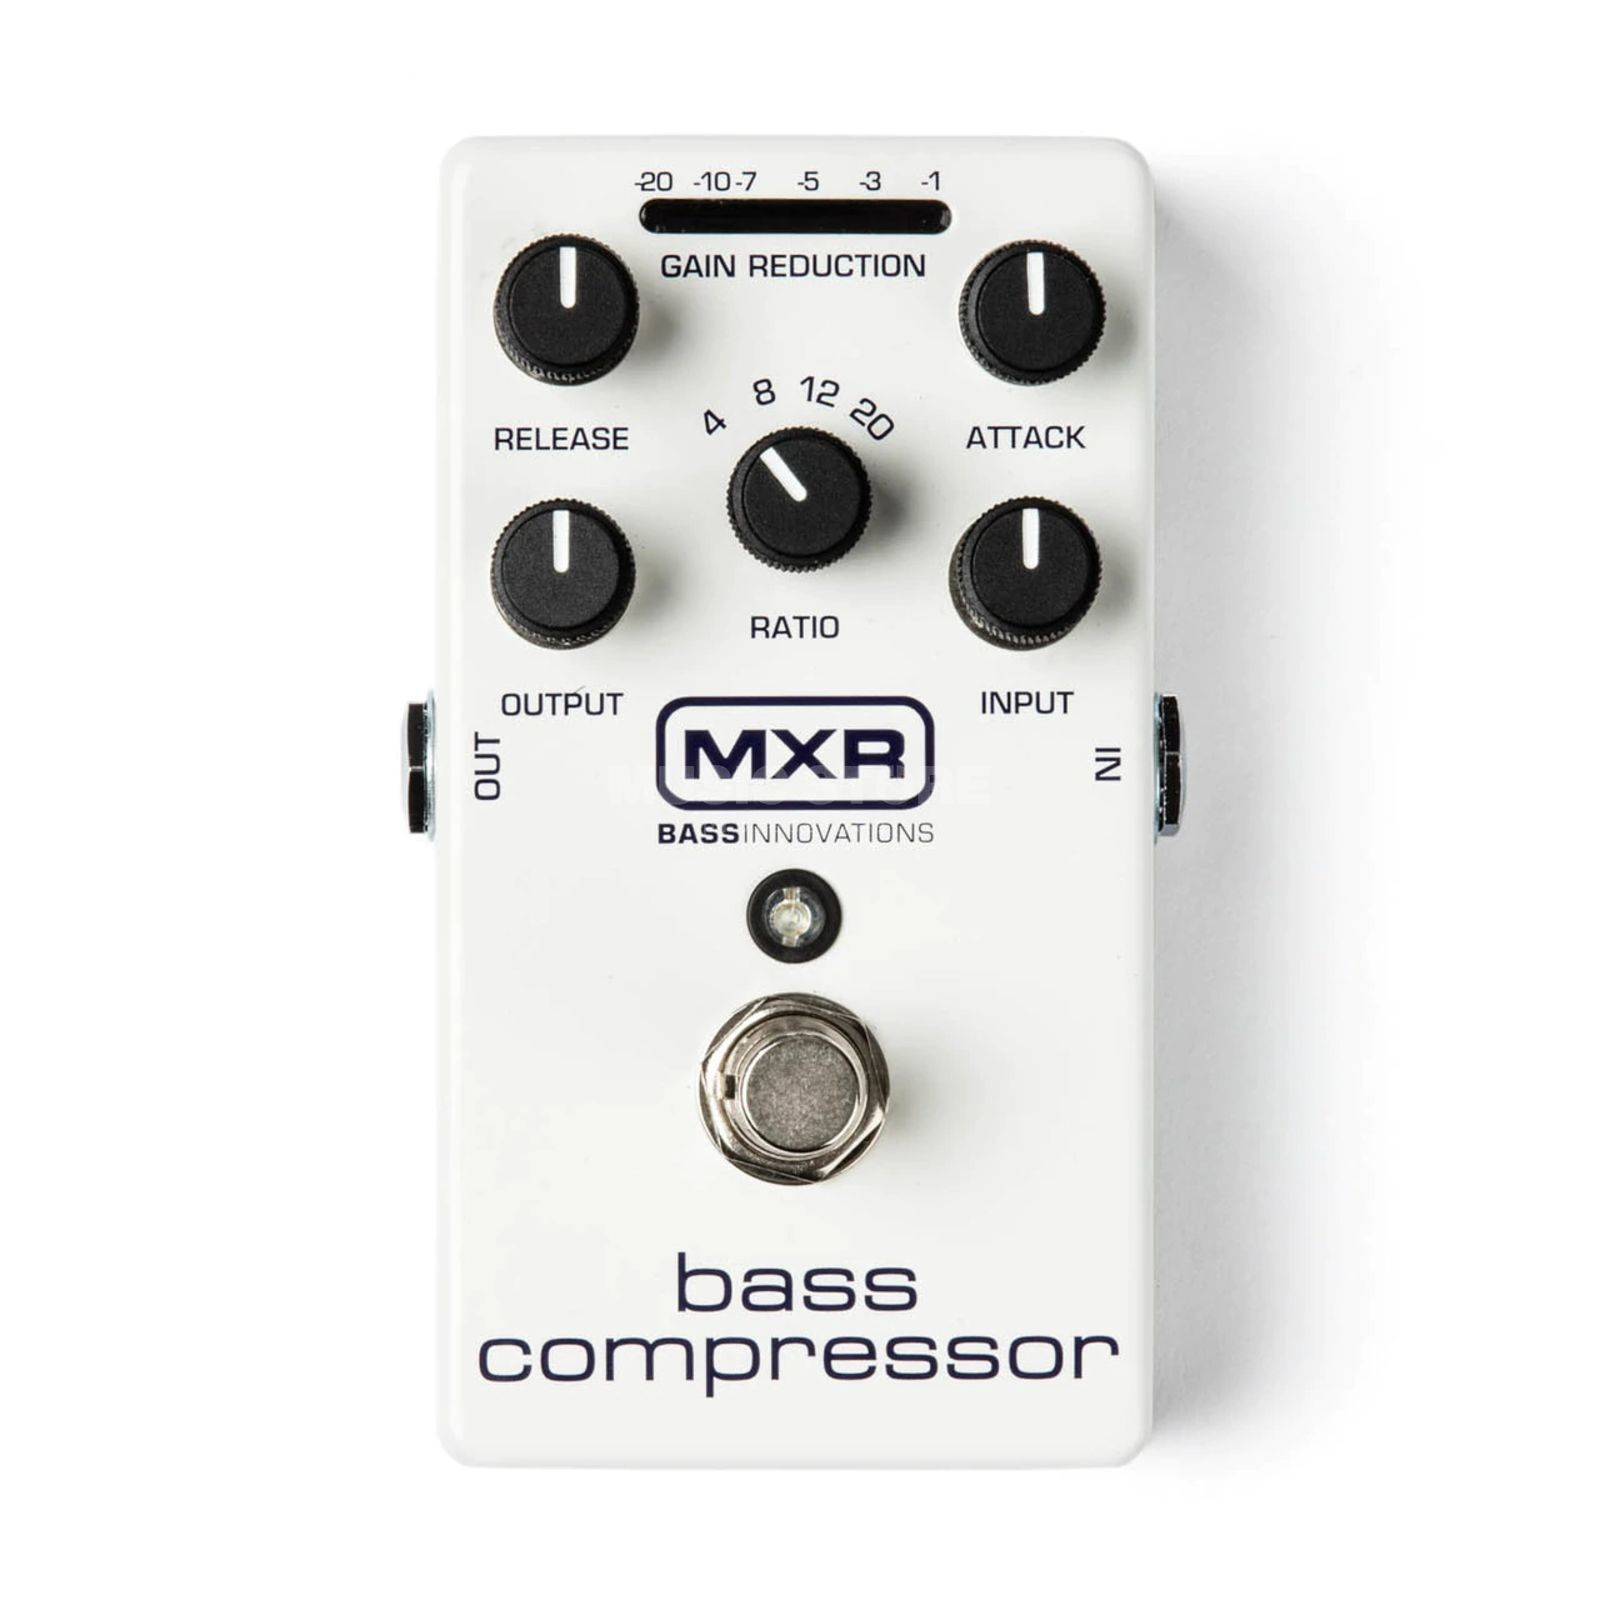 MXR M87 Bass Compressor Bass Guita r Effects Pedal   Product Image